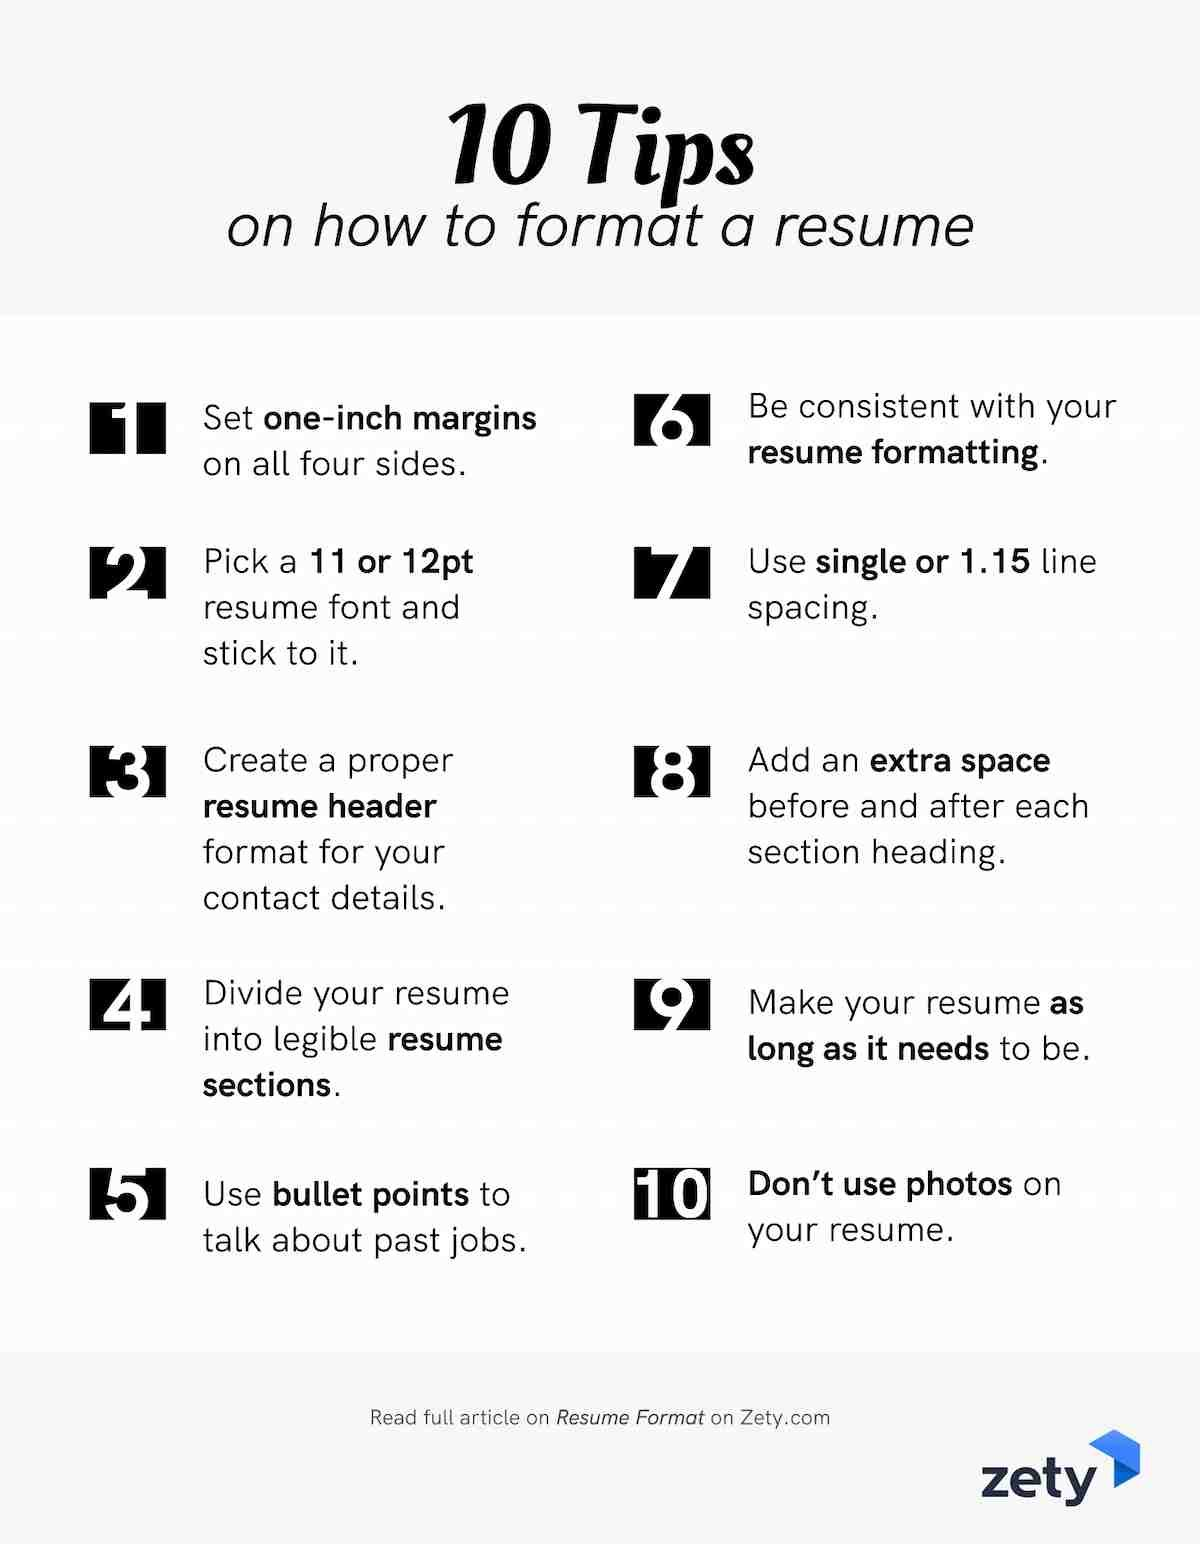 10 resume formatting tips for a professional resume